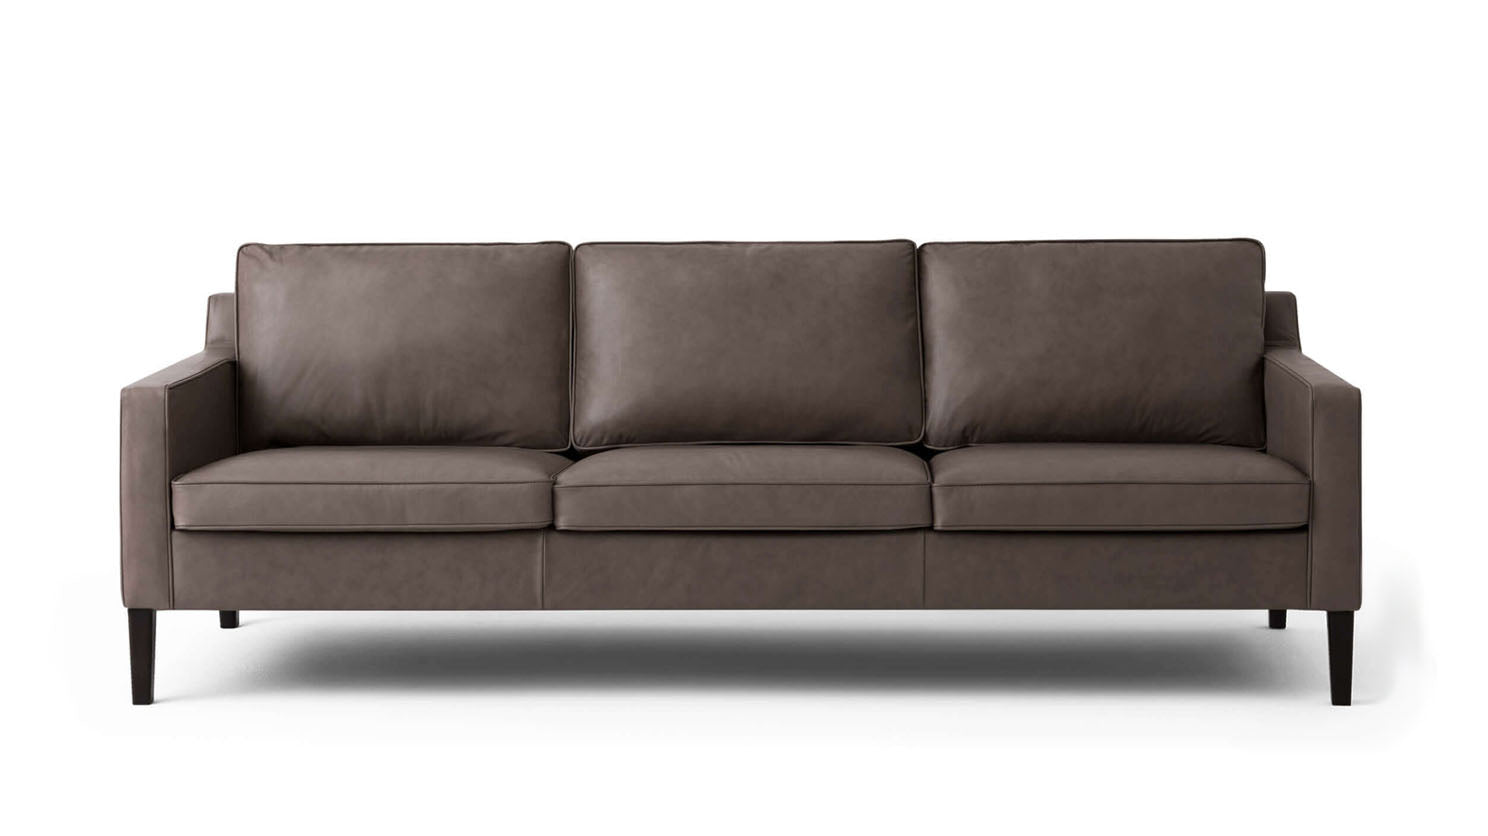 skye sofa - leather